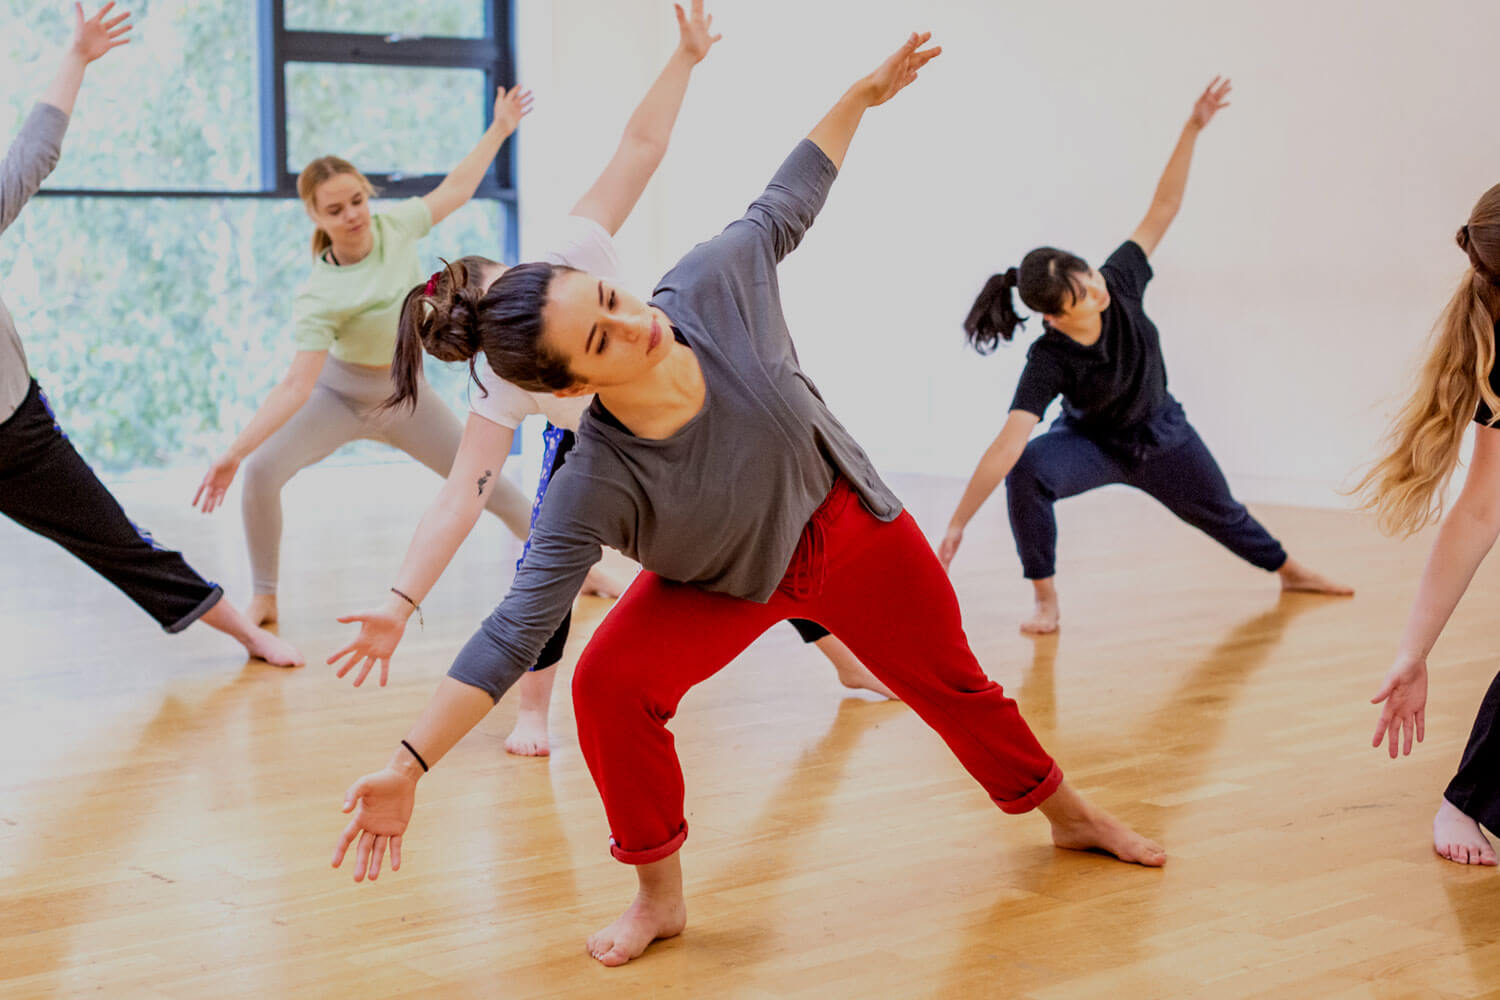 Dancers stretching in studio2